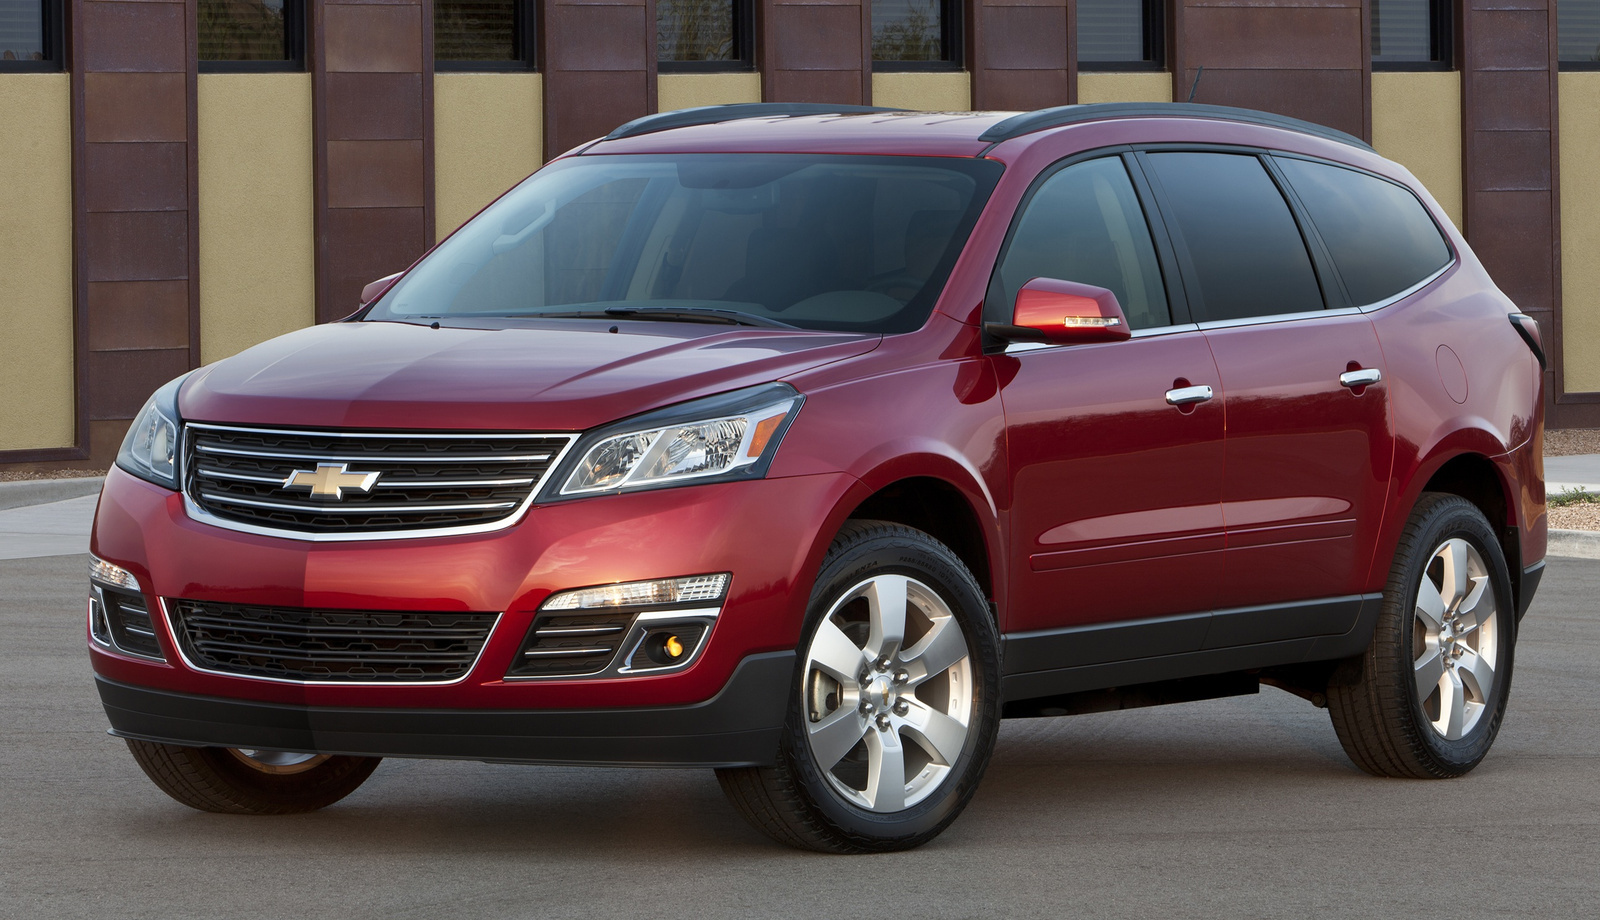 2016_chevrolet_traverse-pic-7975953688961375628-1600x1200